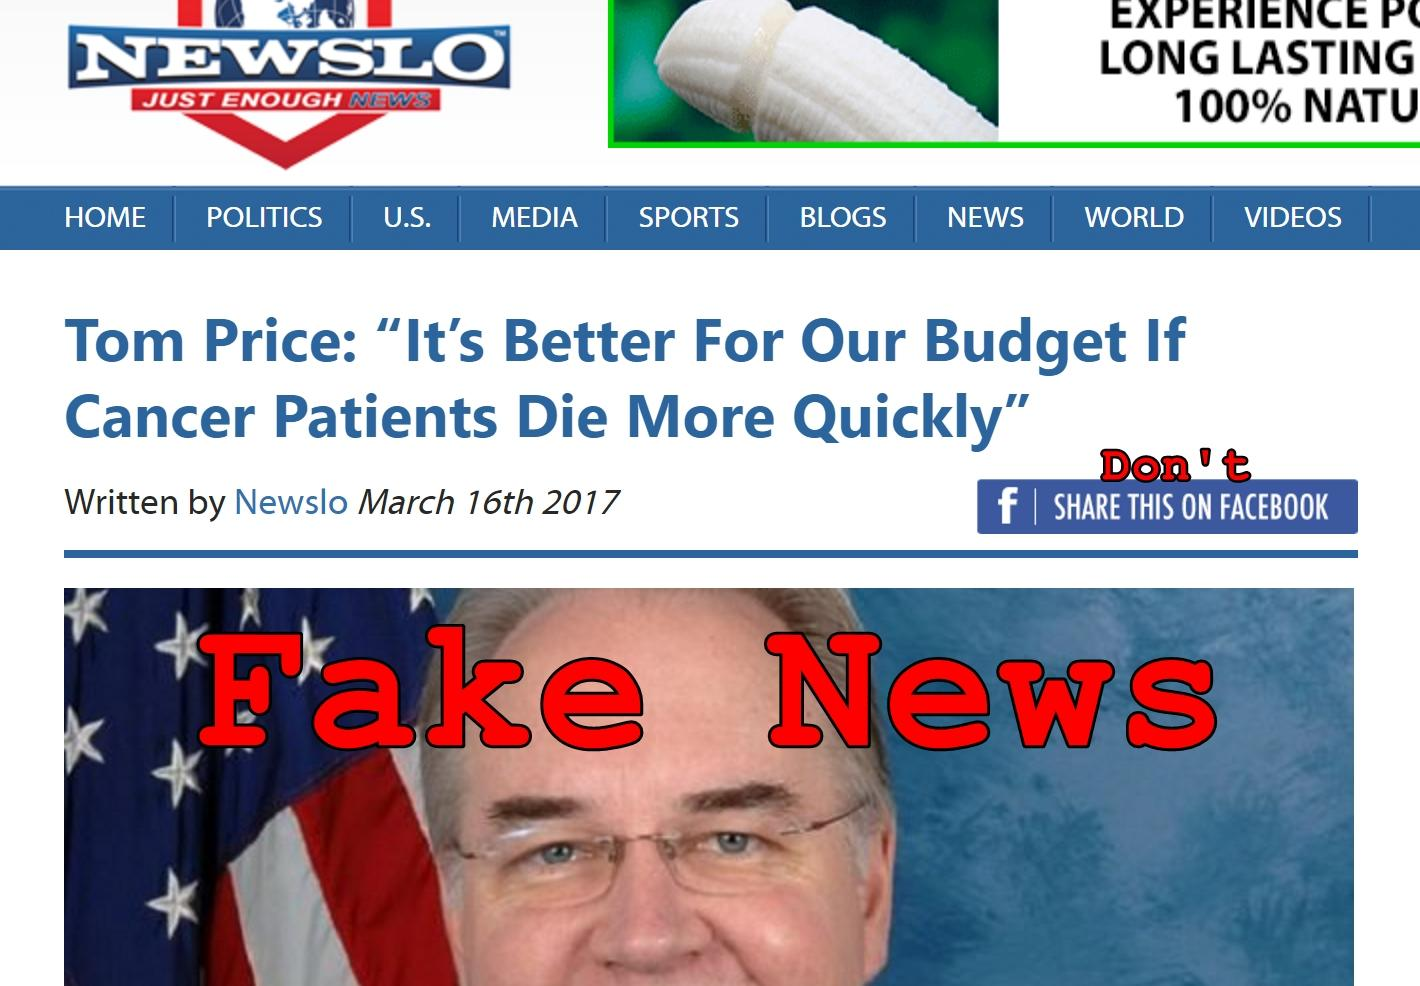 Fake News: Tom Price Did NOT Say It Is Better For Budget If Cancer Patients Die More Quickly